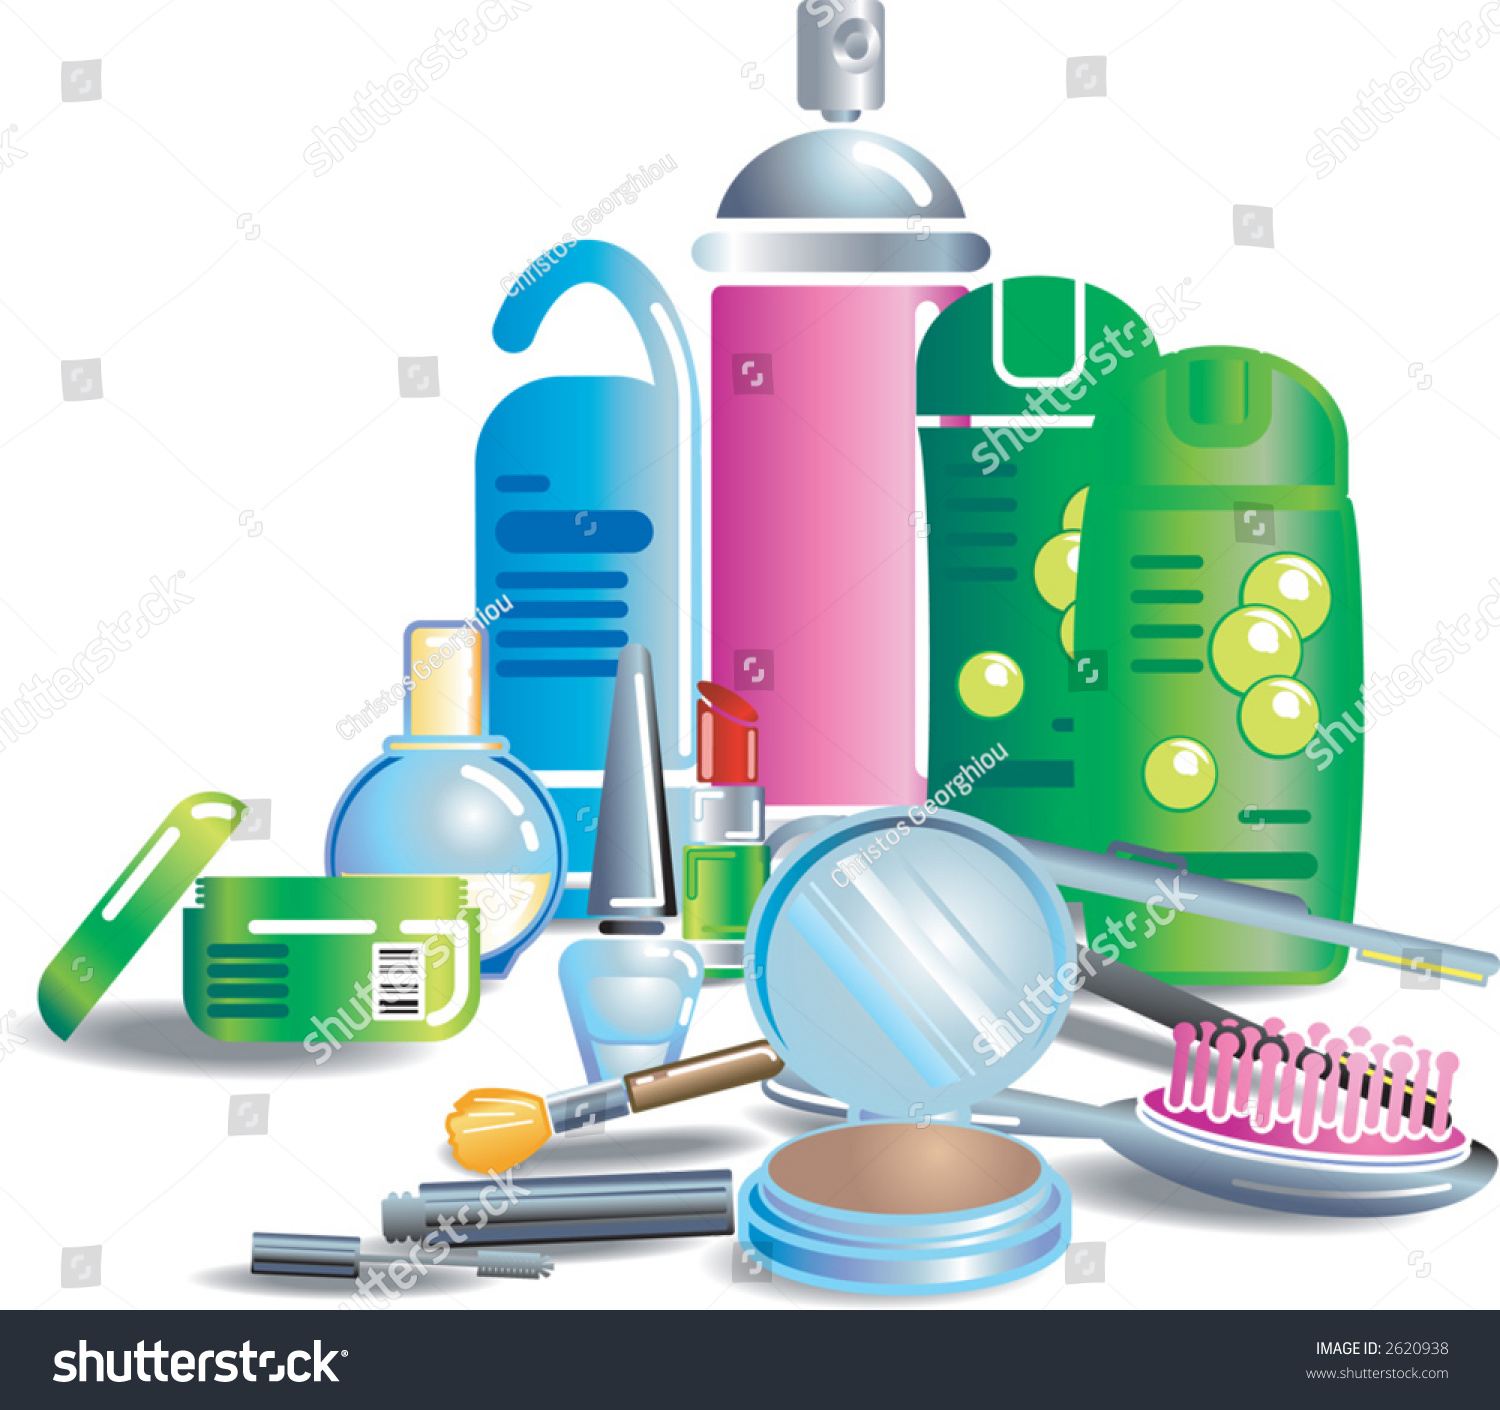 Cosmetics And Beauty Products Illustration Of Cosmetics And Other Bathroom Stuff Each Item Or Set